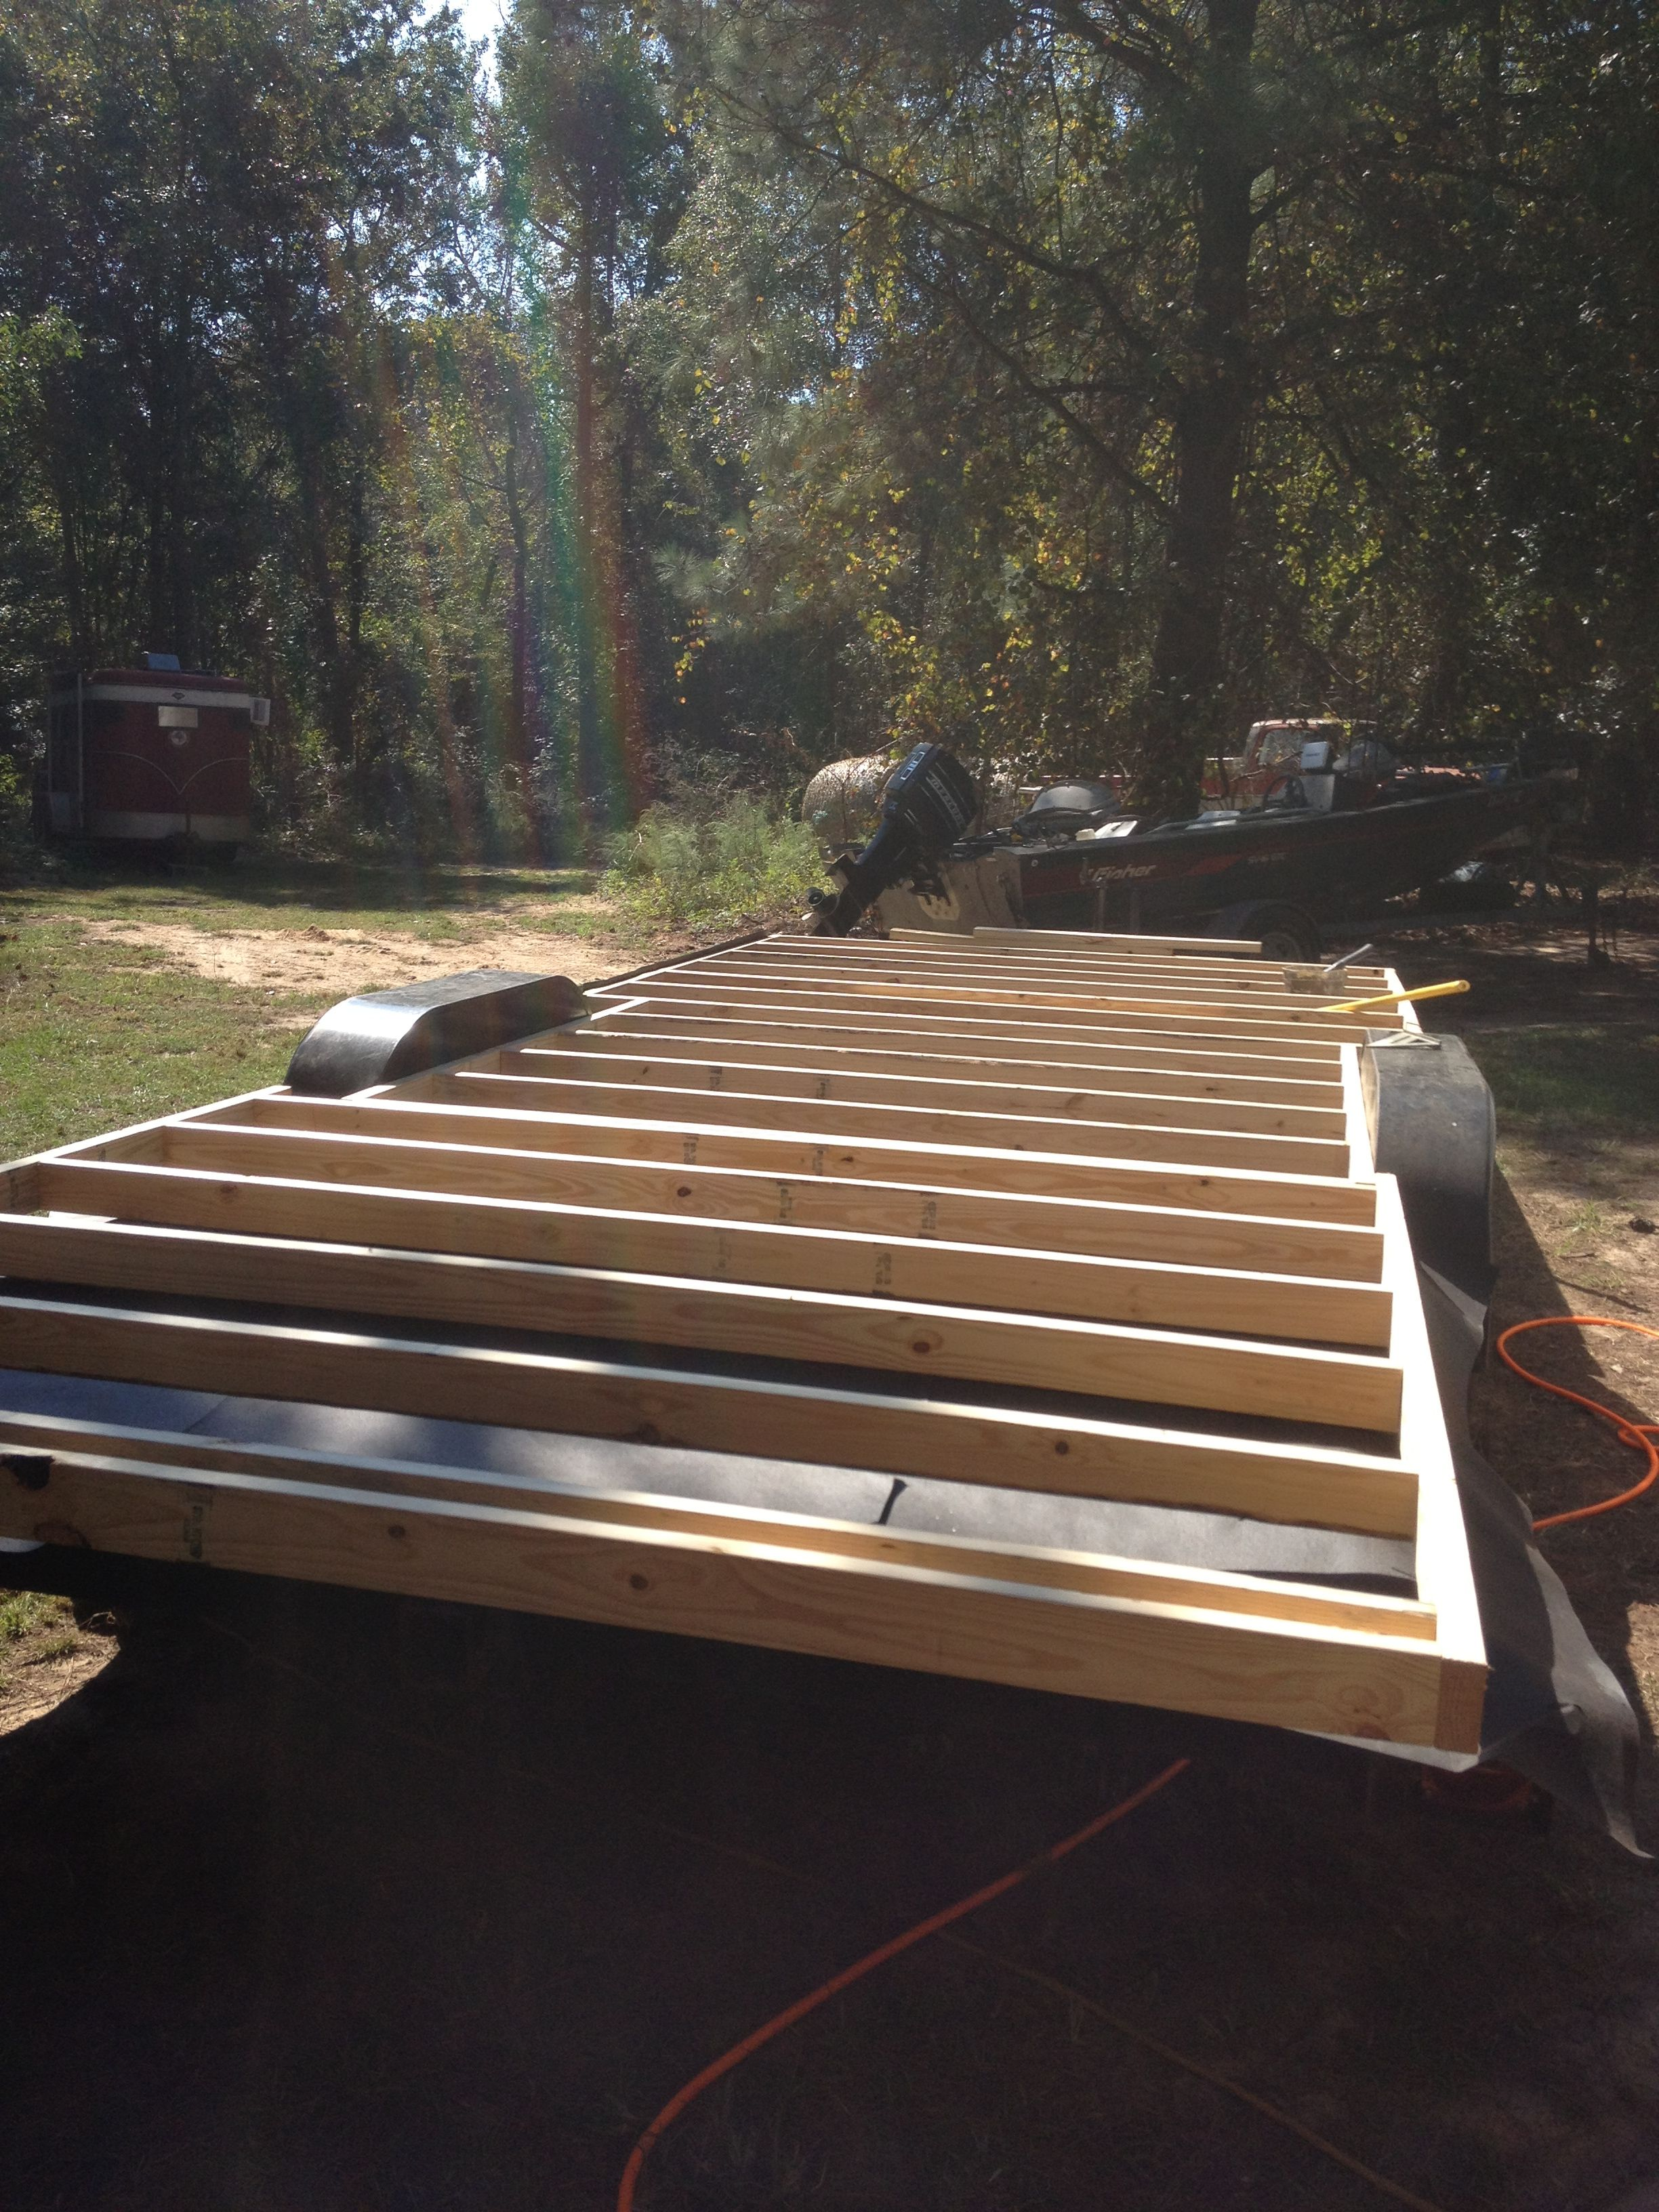 We started on our Tiny house on October 5 2013. We used a